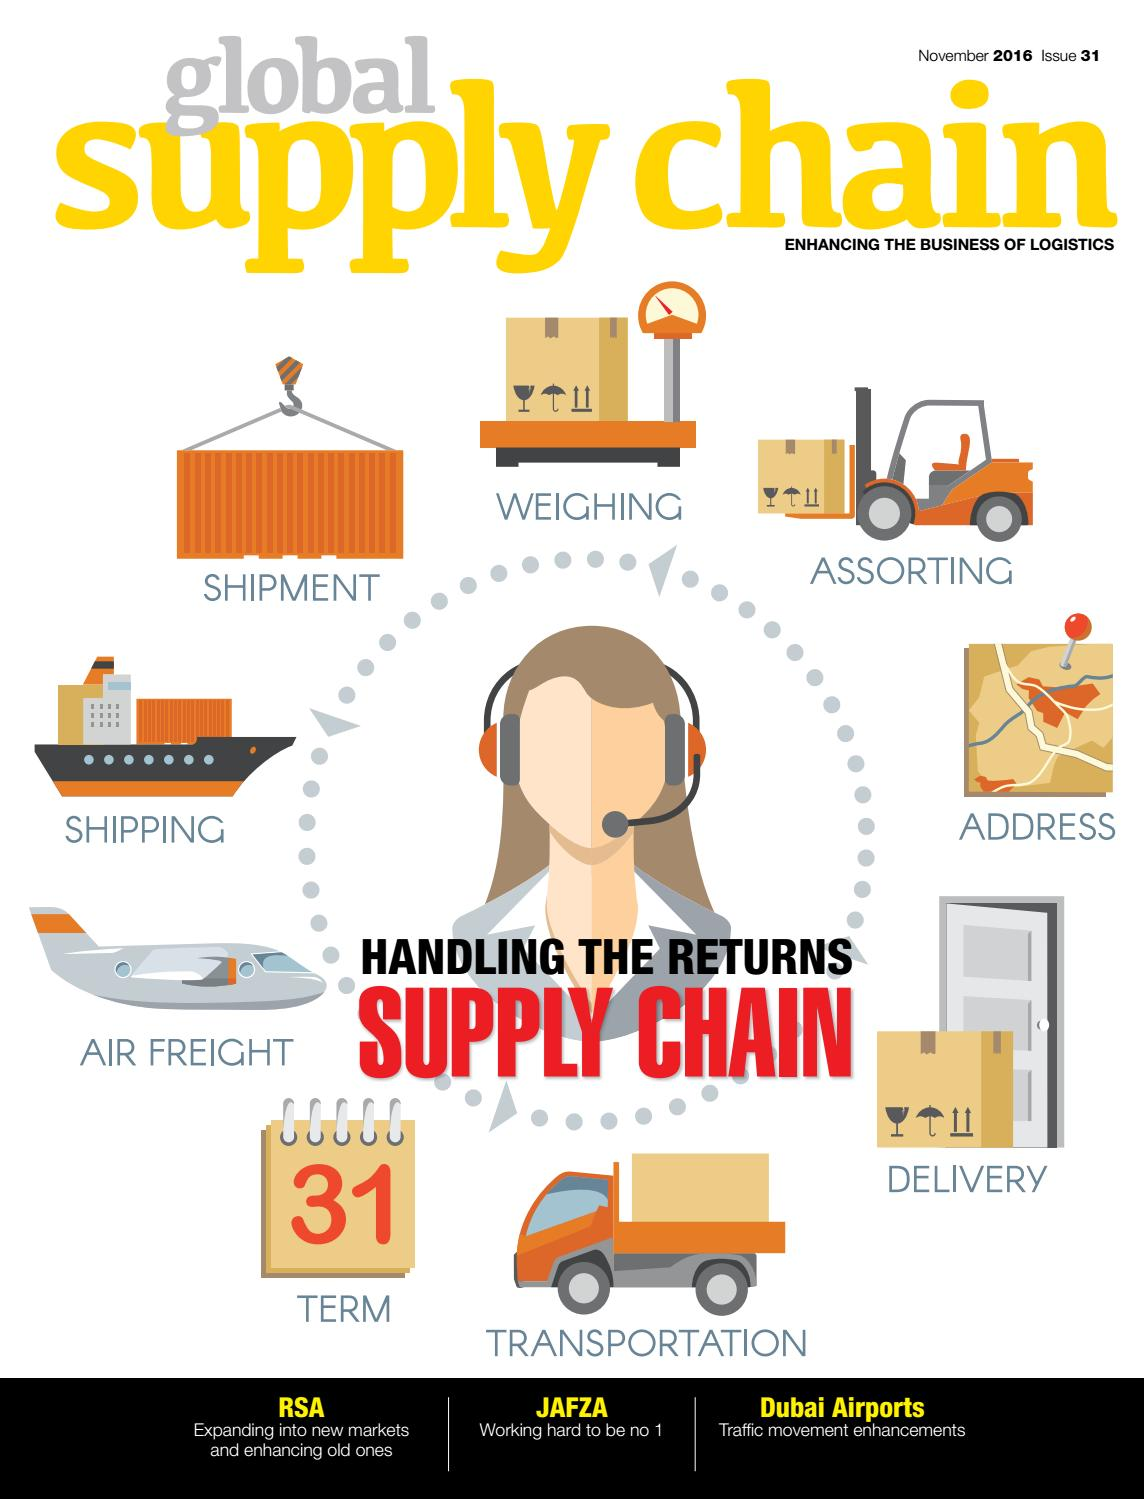 Global supply chain november 2016 issue by global supply chain issuu - Hours work day efficient solutions from sweden ...